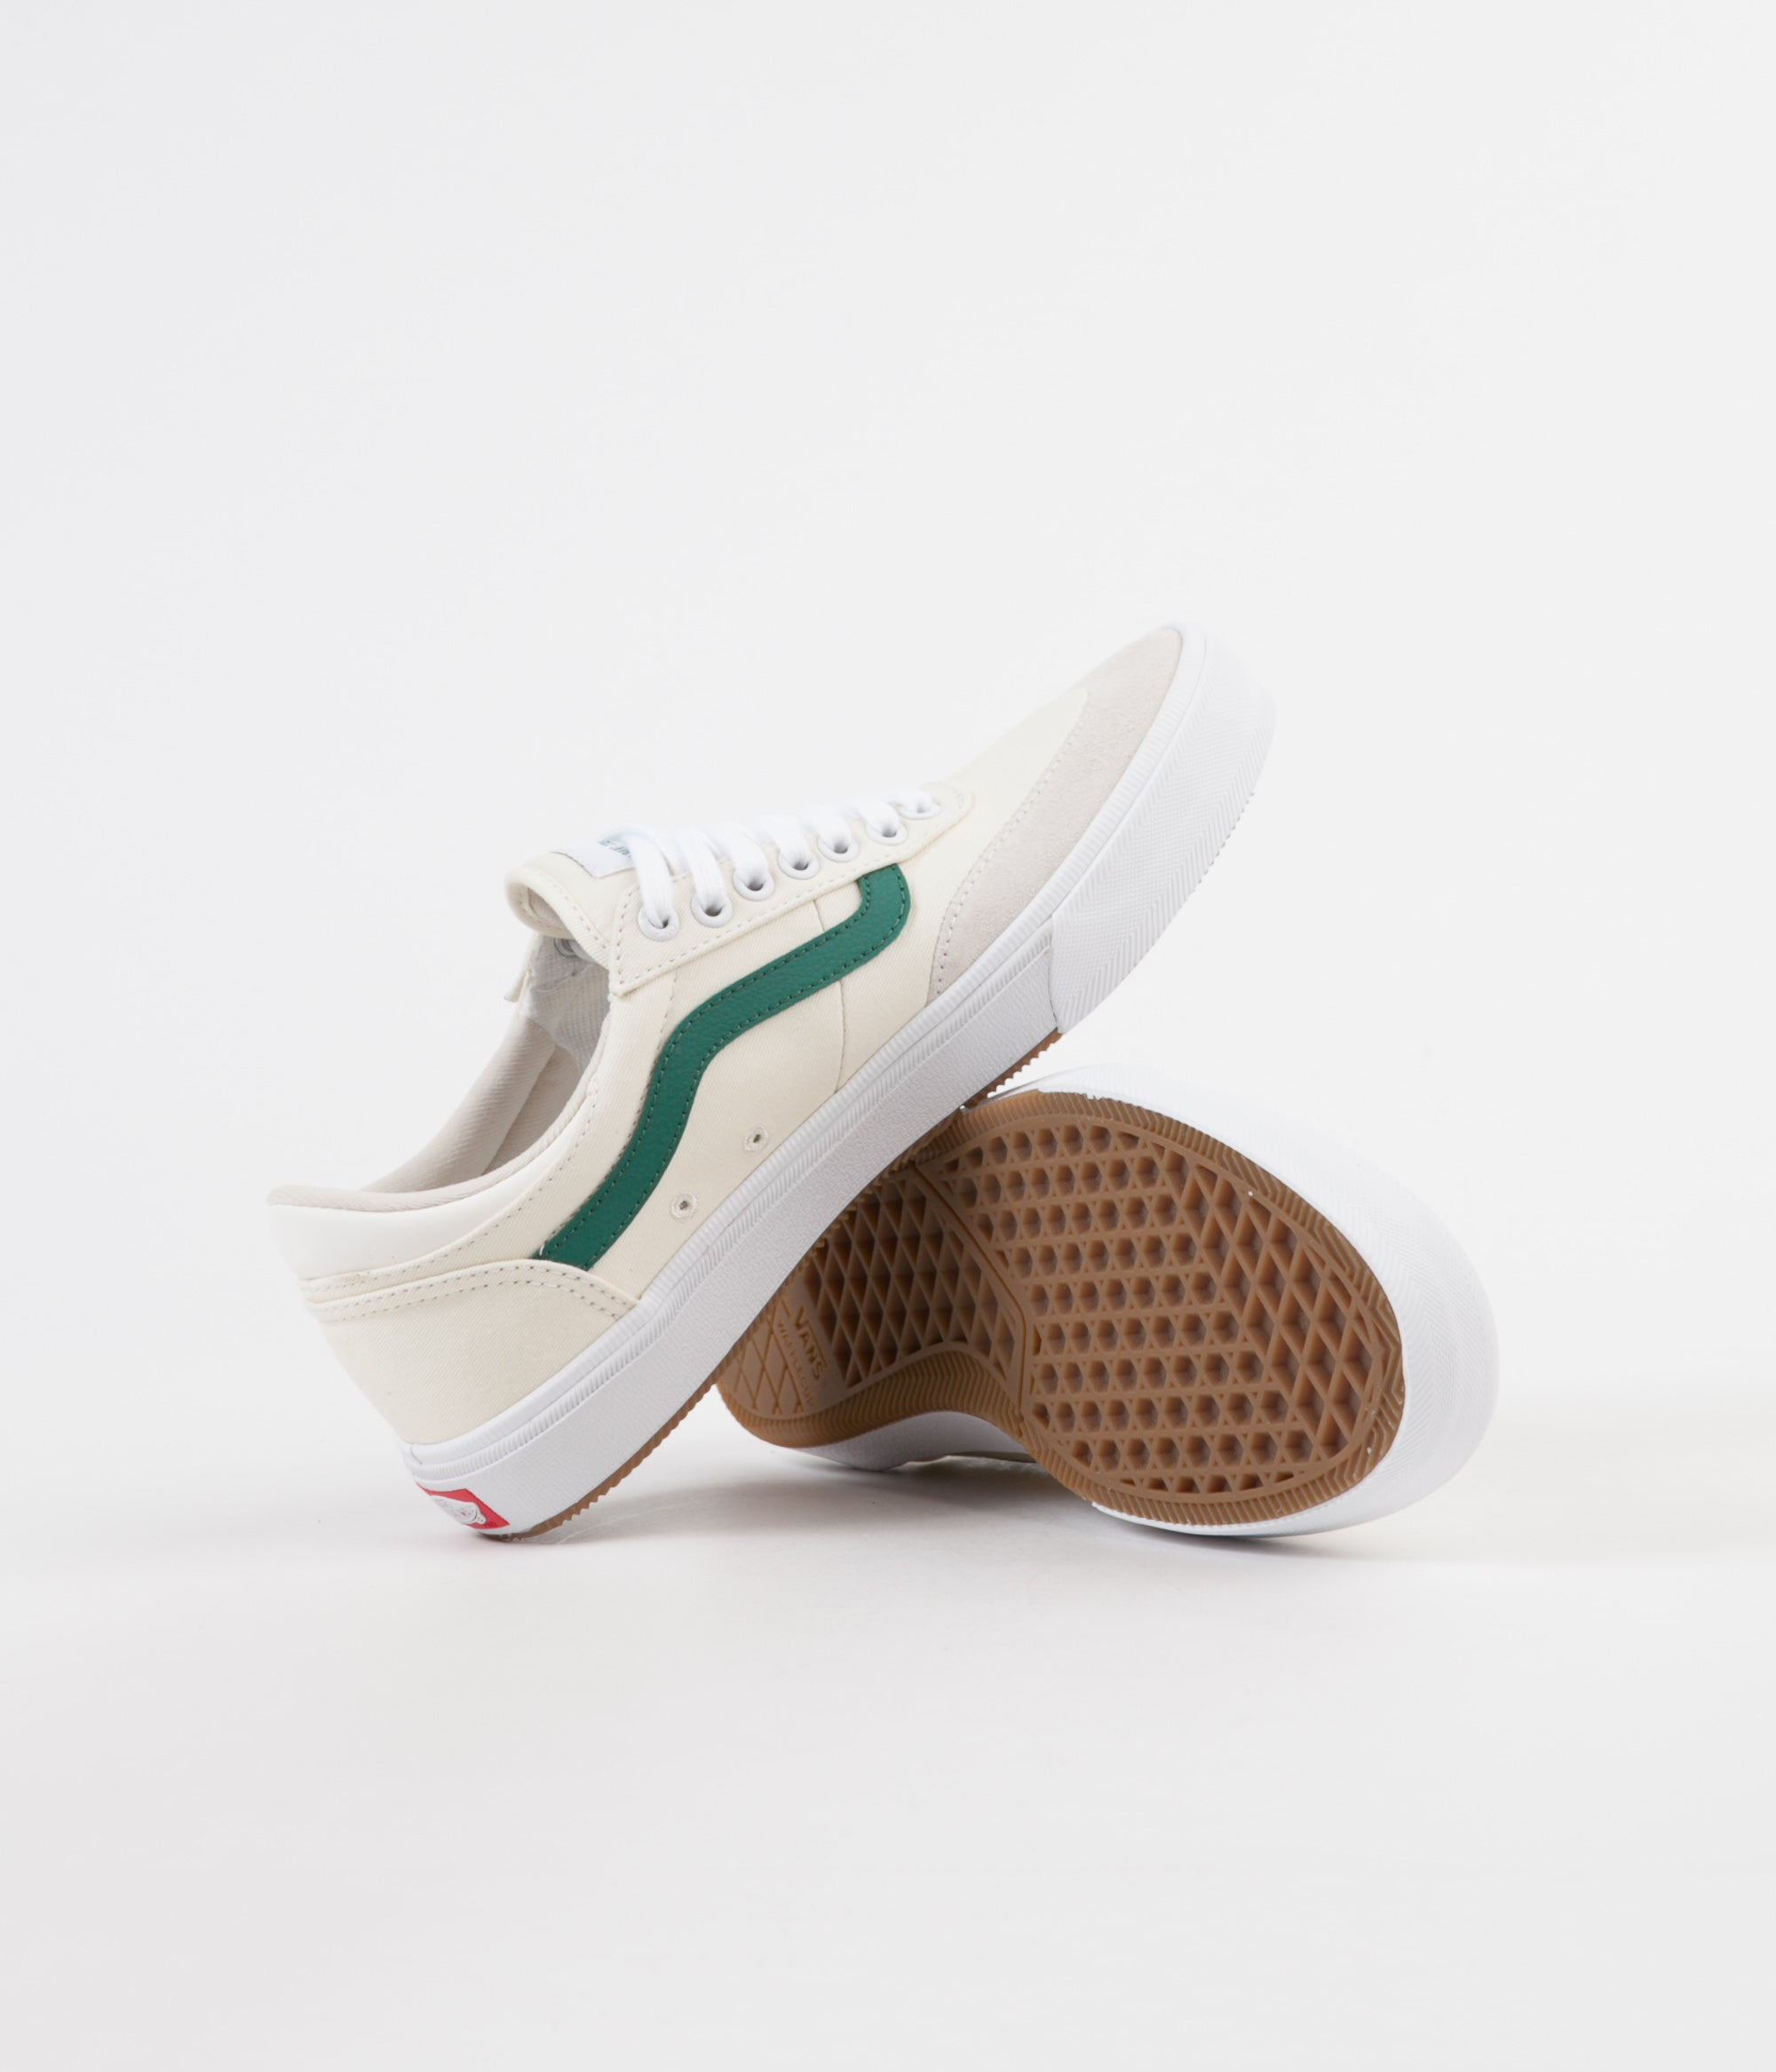 Vans Gilbert Crockett Chaussure - classic white evergreen ttP1r0vp